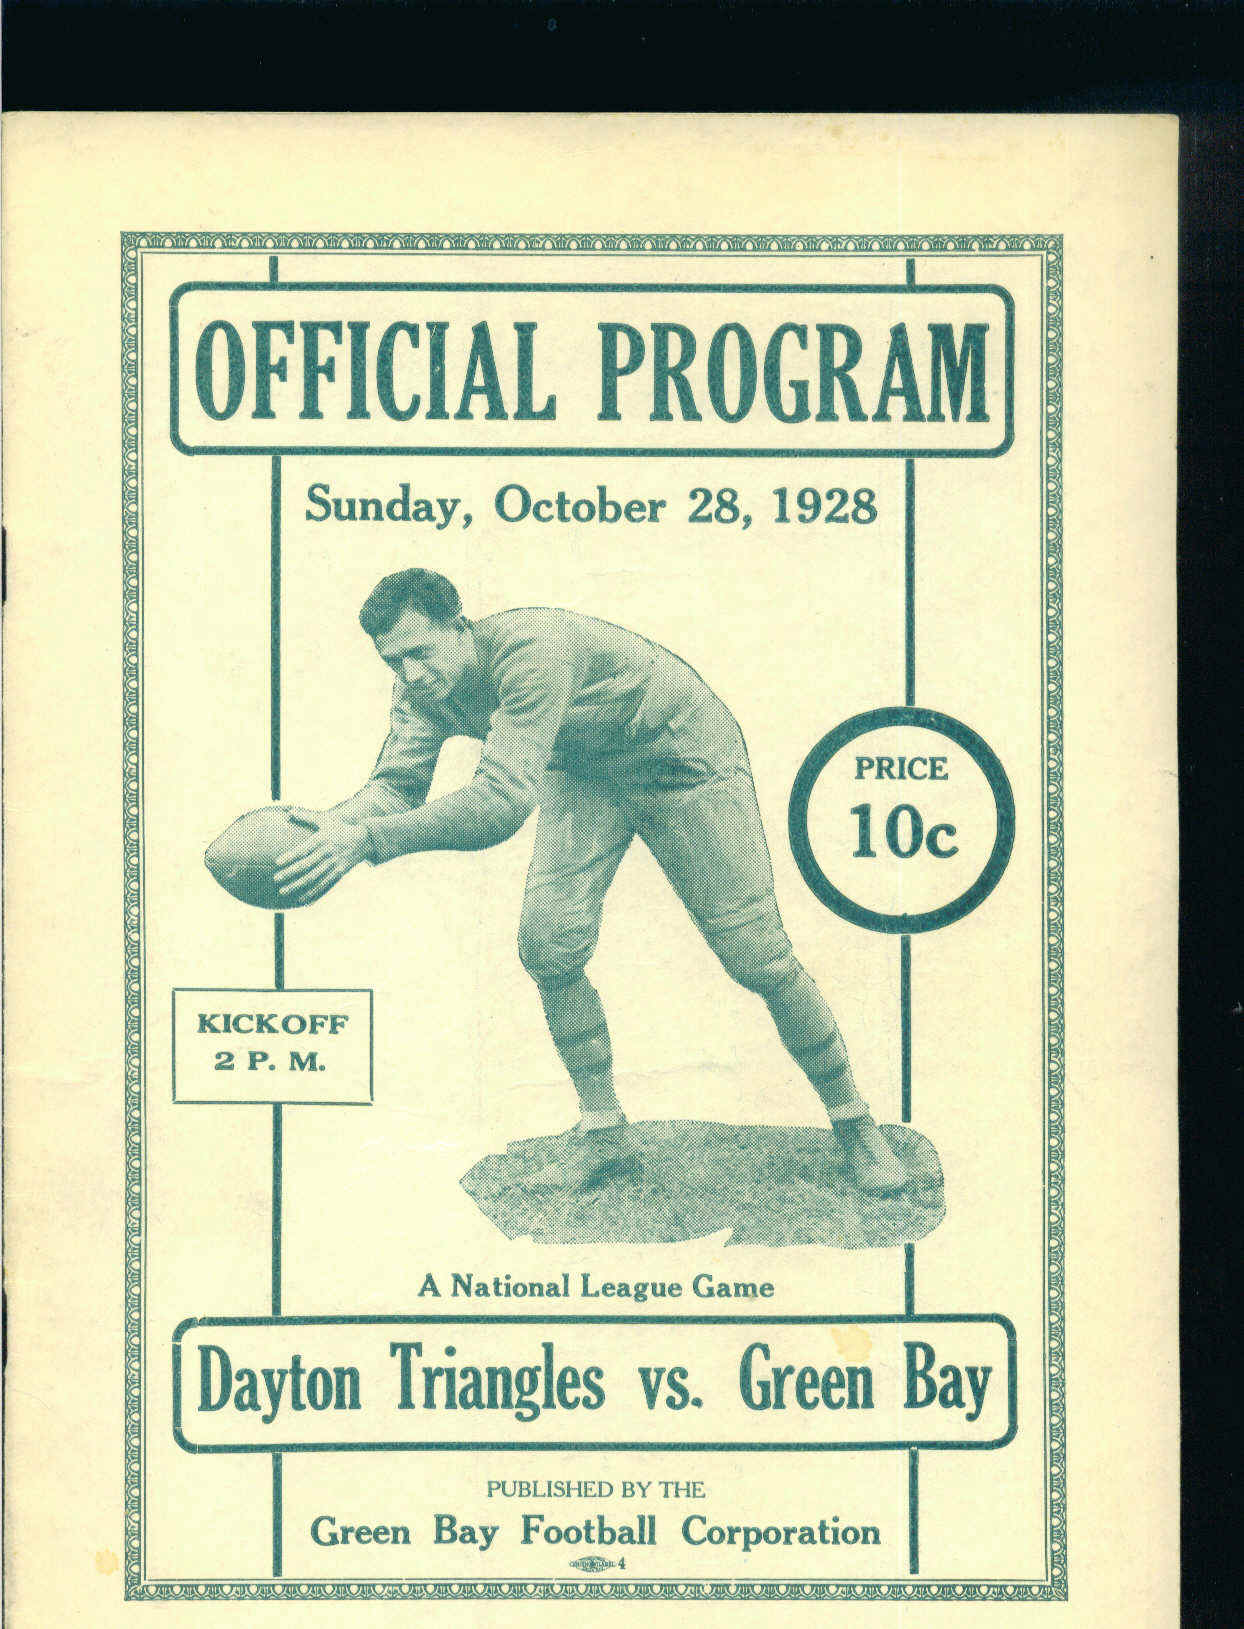 NFL - Green Bay Packers vs. Dayton Triangles, October 28, 1928